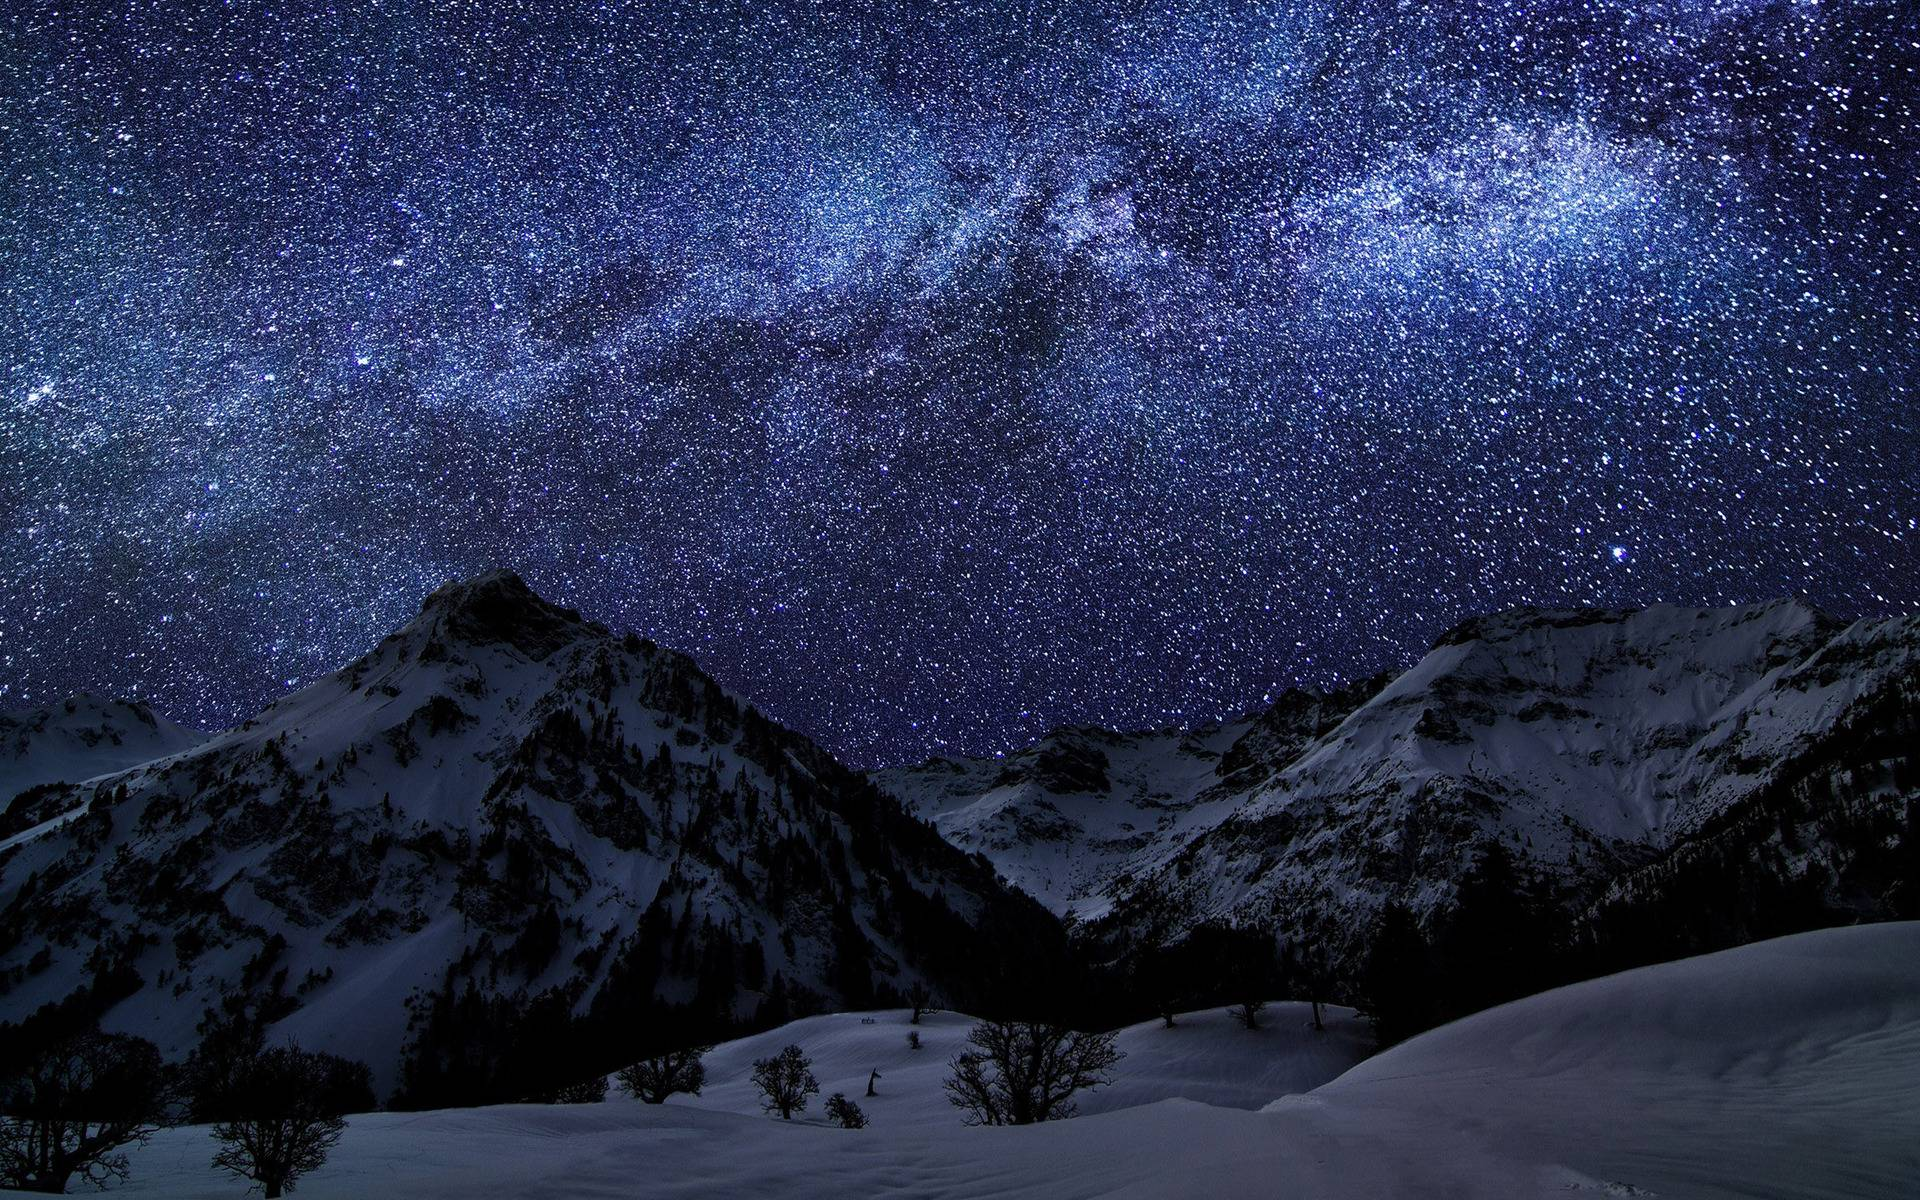 Milky Way above the mountains Wallpapers #